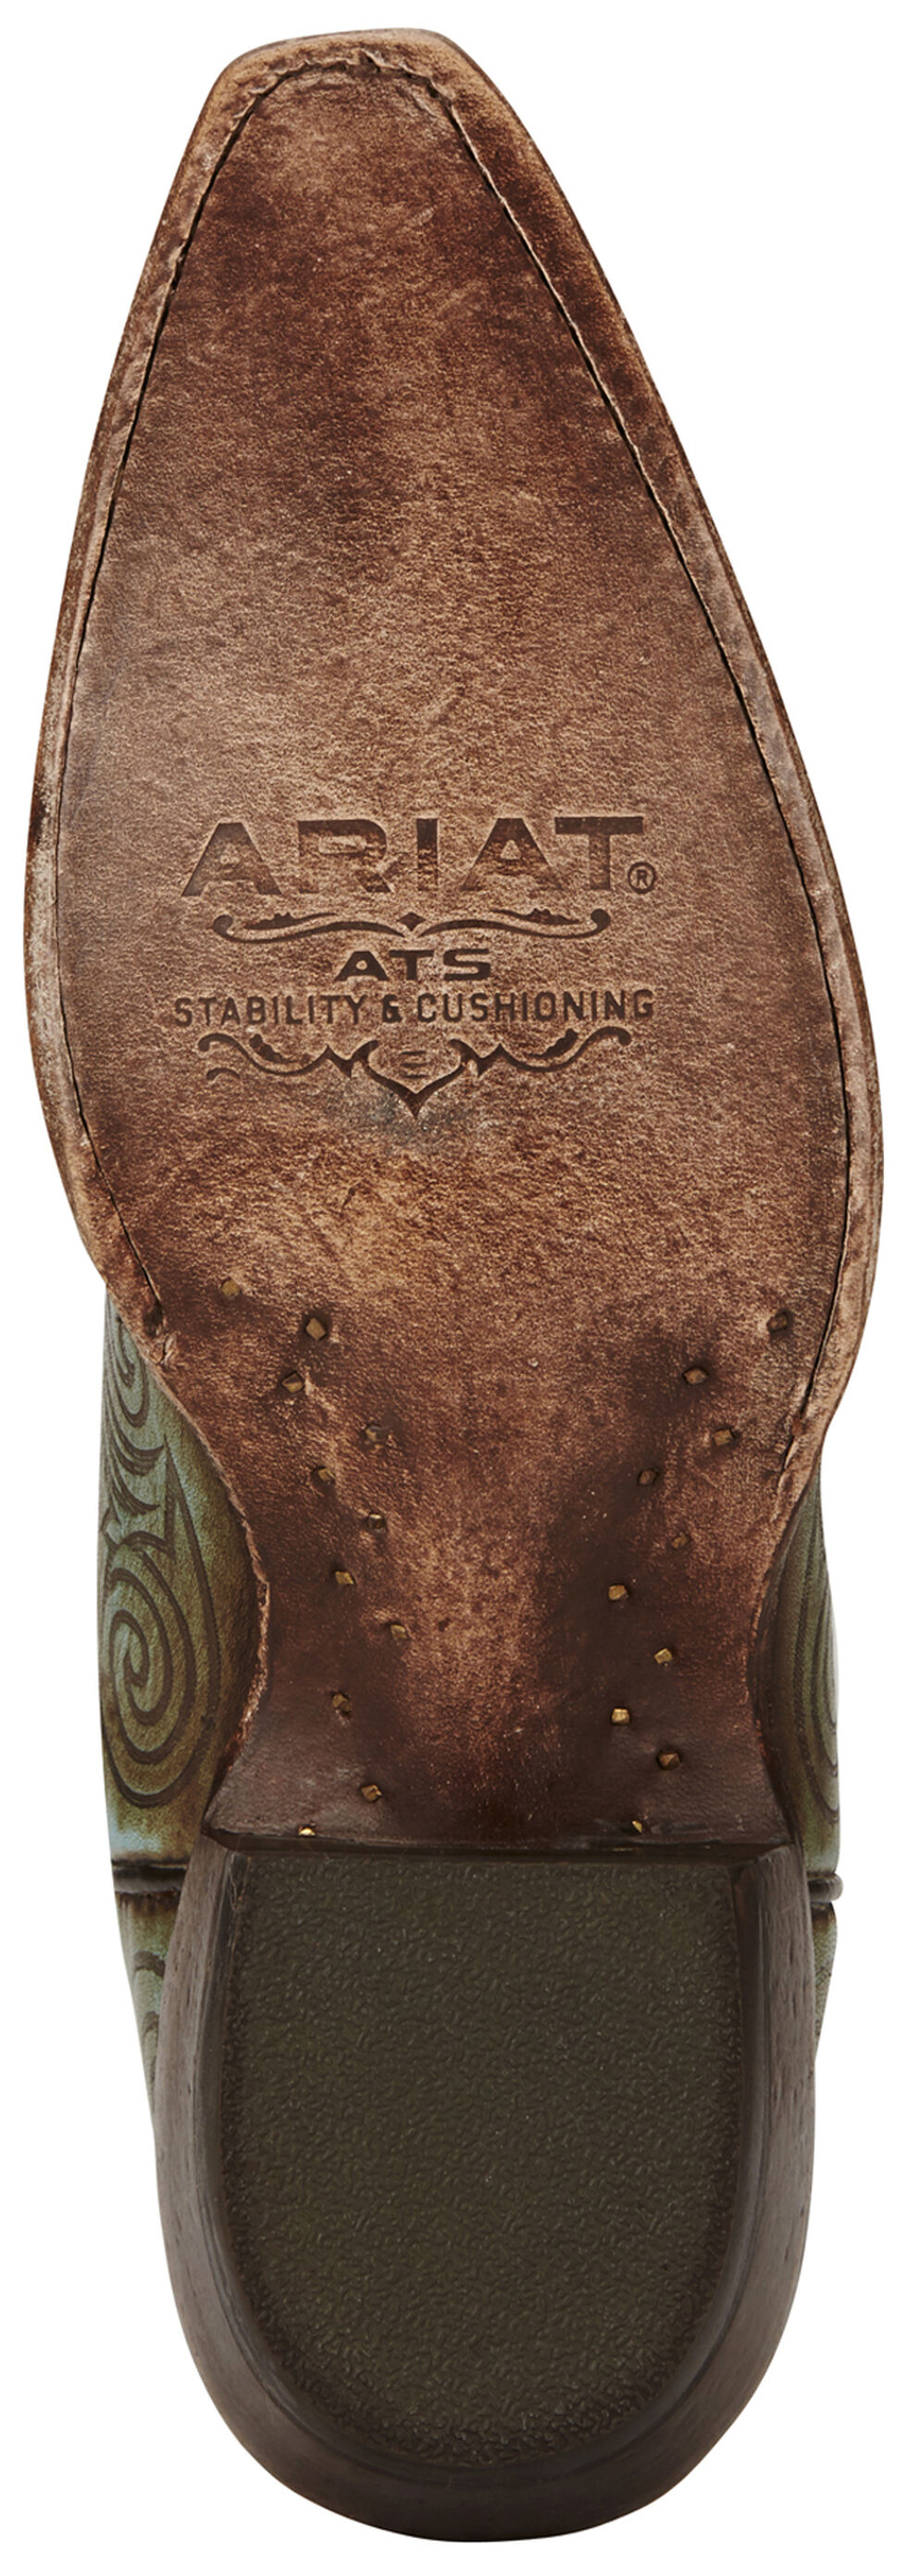 Ariat Women's Turquoise Sterling Boots - Snip Toe, , hi-res